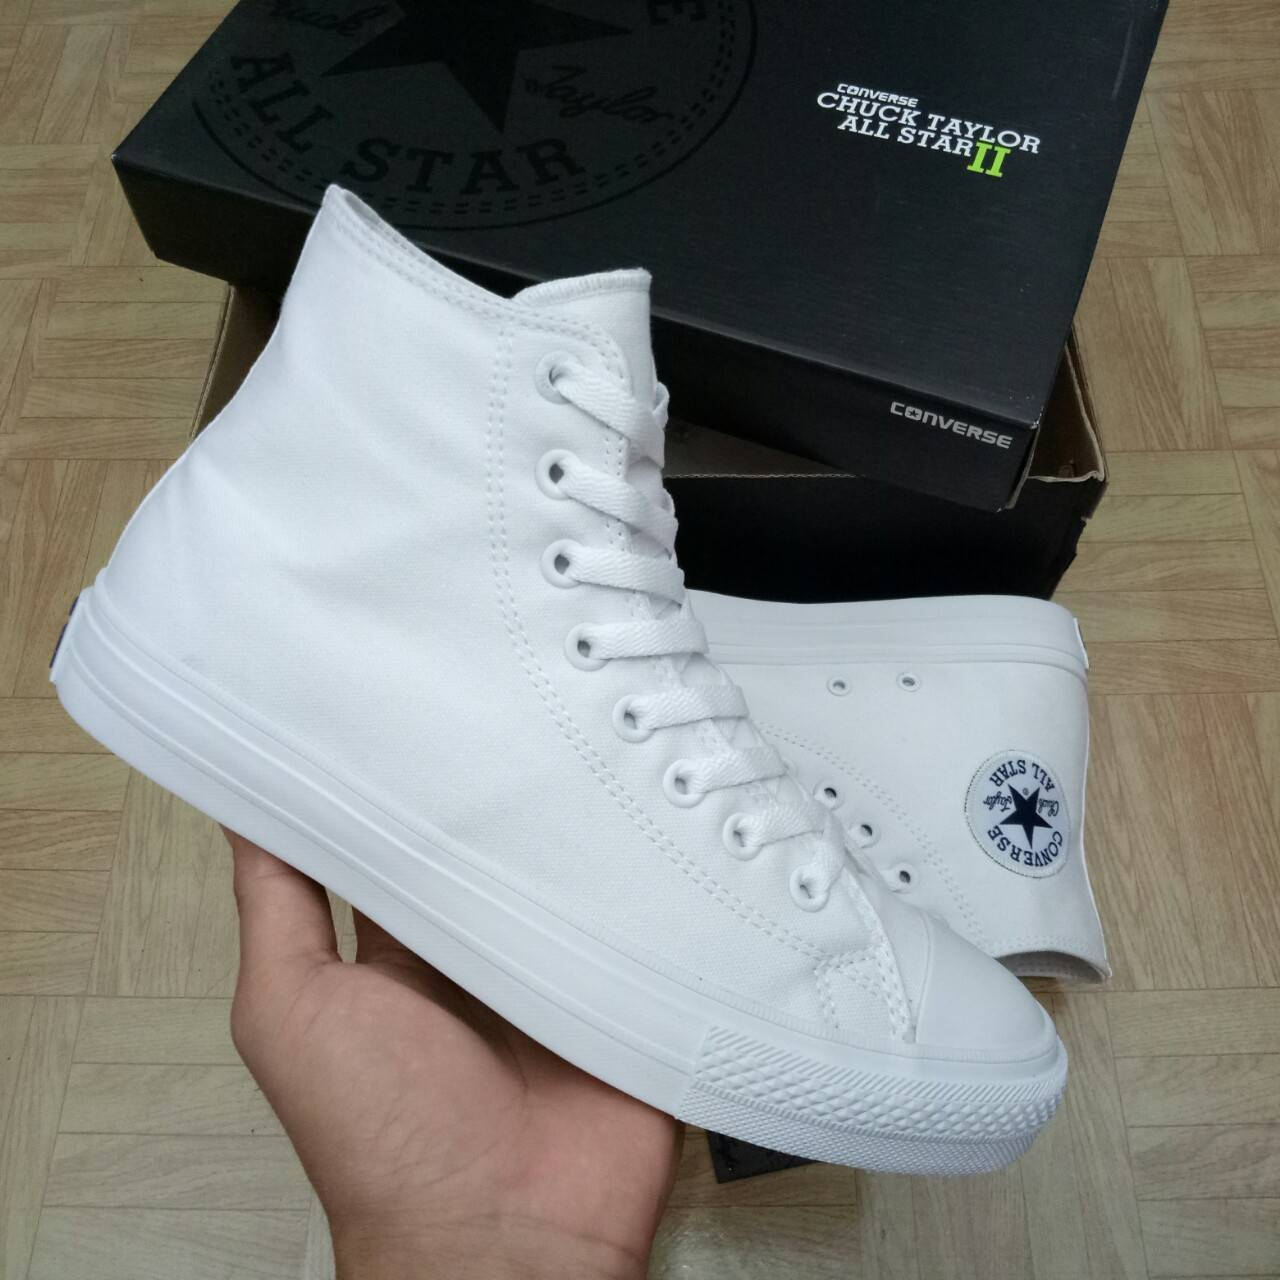 SEPATU CONVERSE CHUCK TAYLOR II HIGH FULL WHITE PREMIUM BNIB (Brand New In  Box) FULL TAG BARCODE MADE IN VIETNAM 0aeab92061